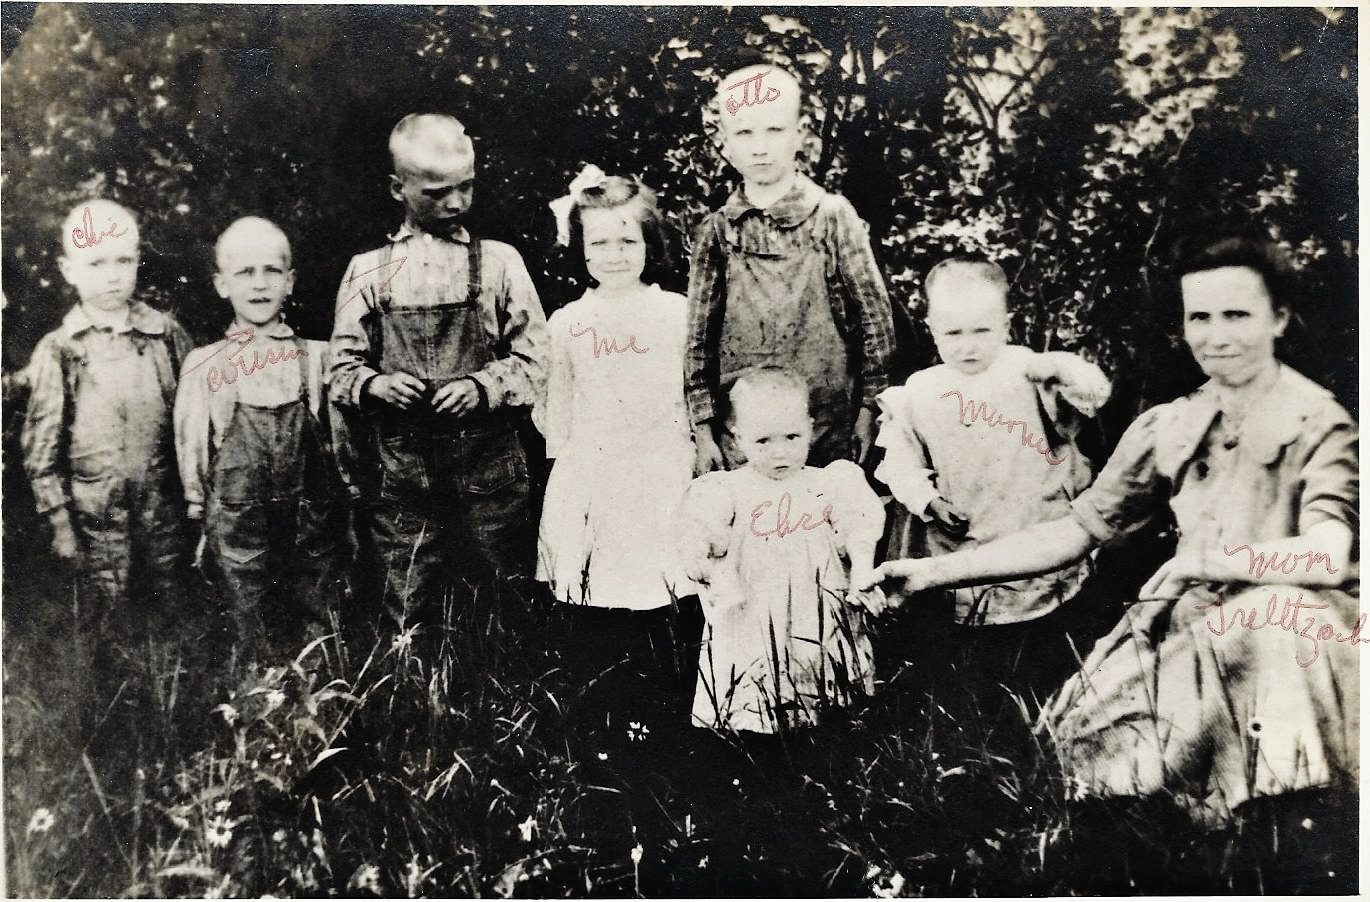 Julia with 5 of her children and 2 cousins (unidentified)